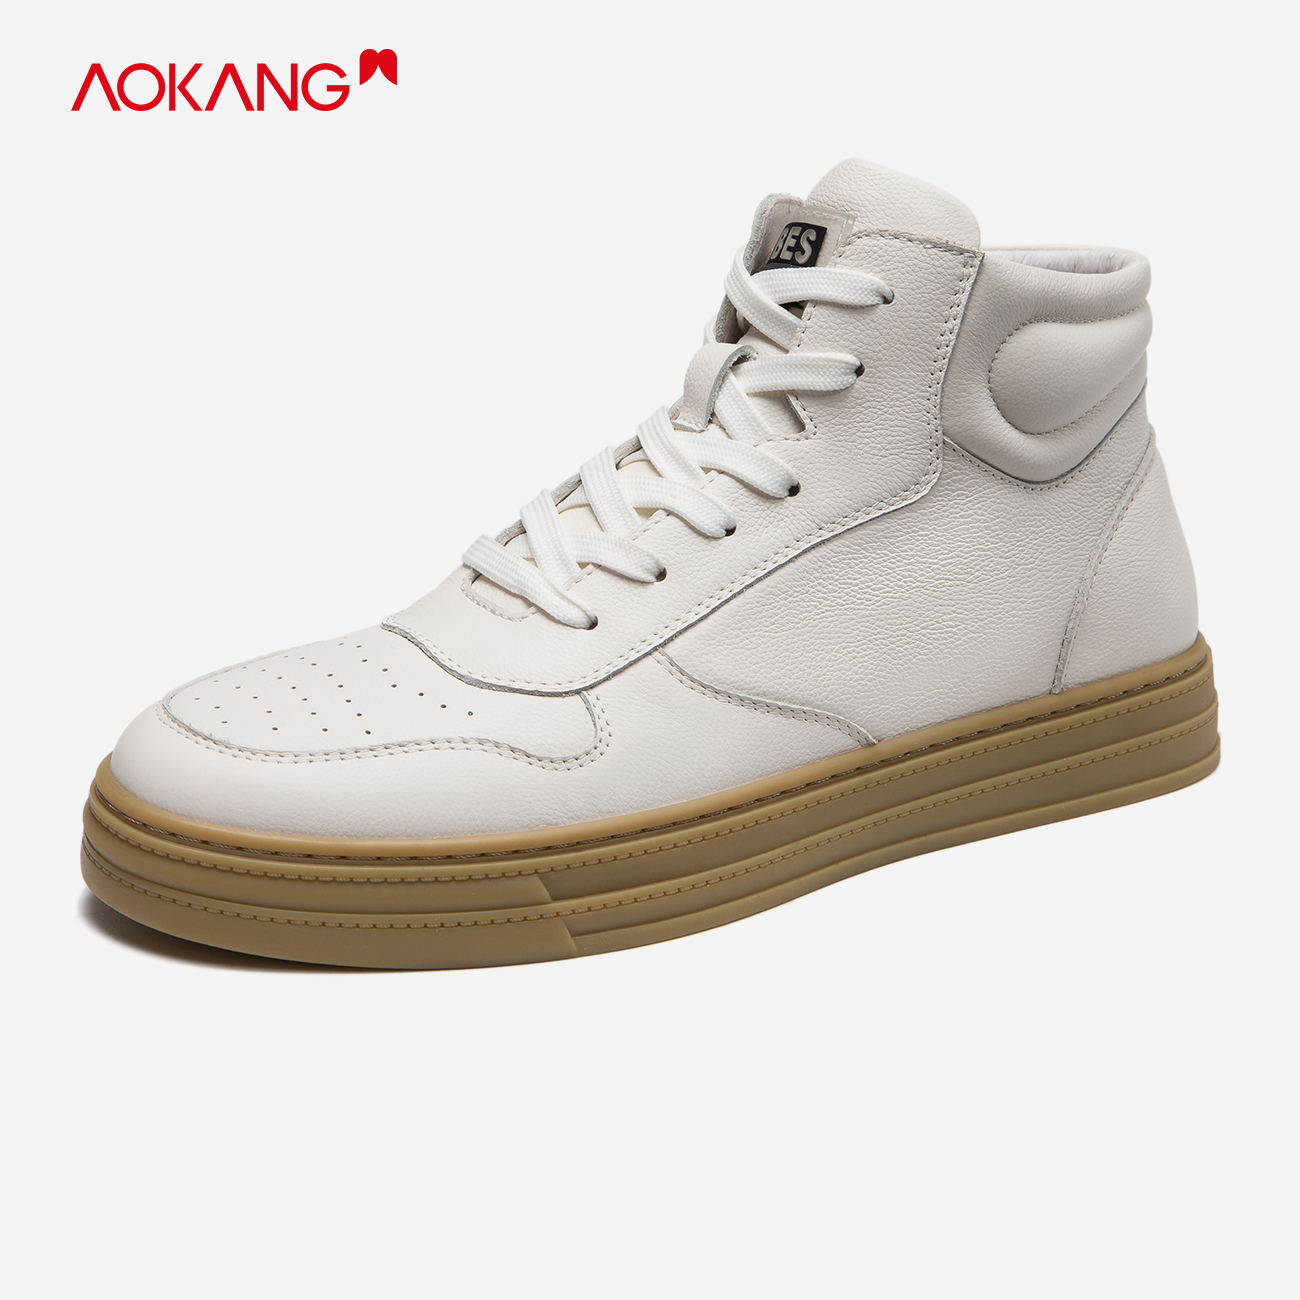 Aokang mens shoes white 2020 autumn fashion Korean high top daily casual shoes mens black youth mens fashion shoes